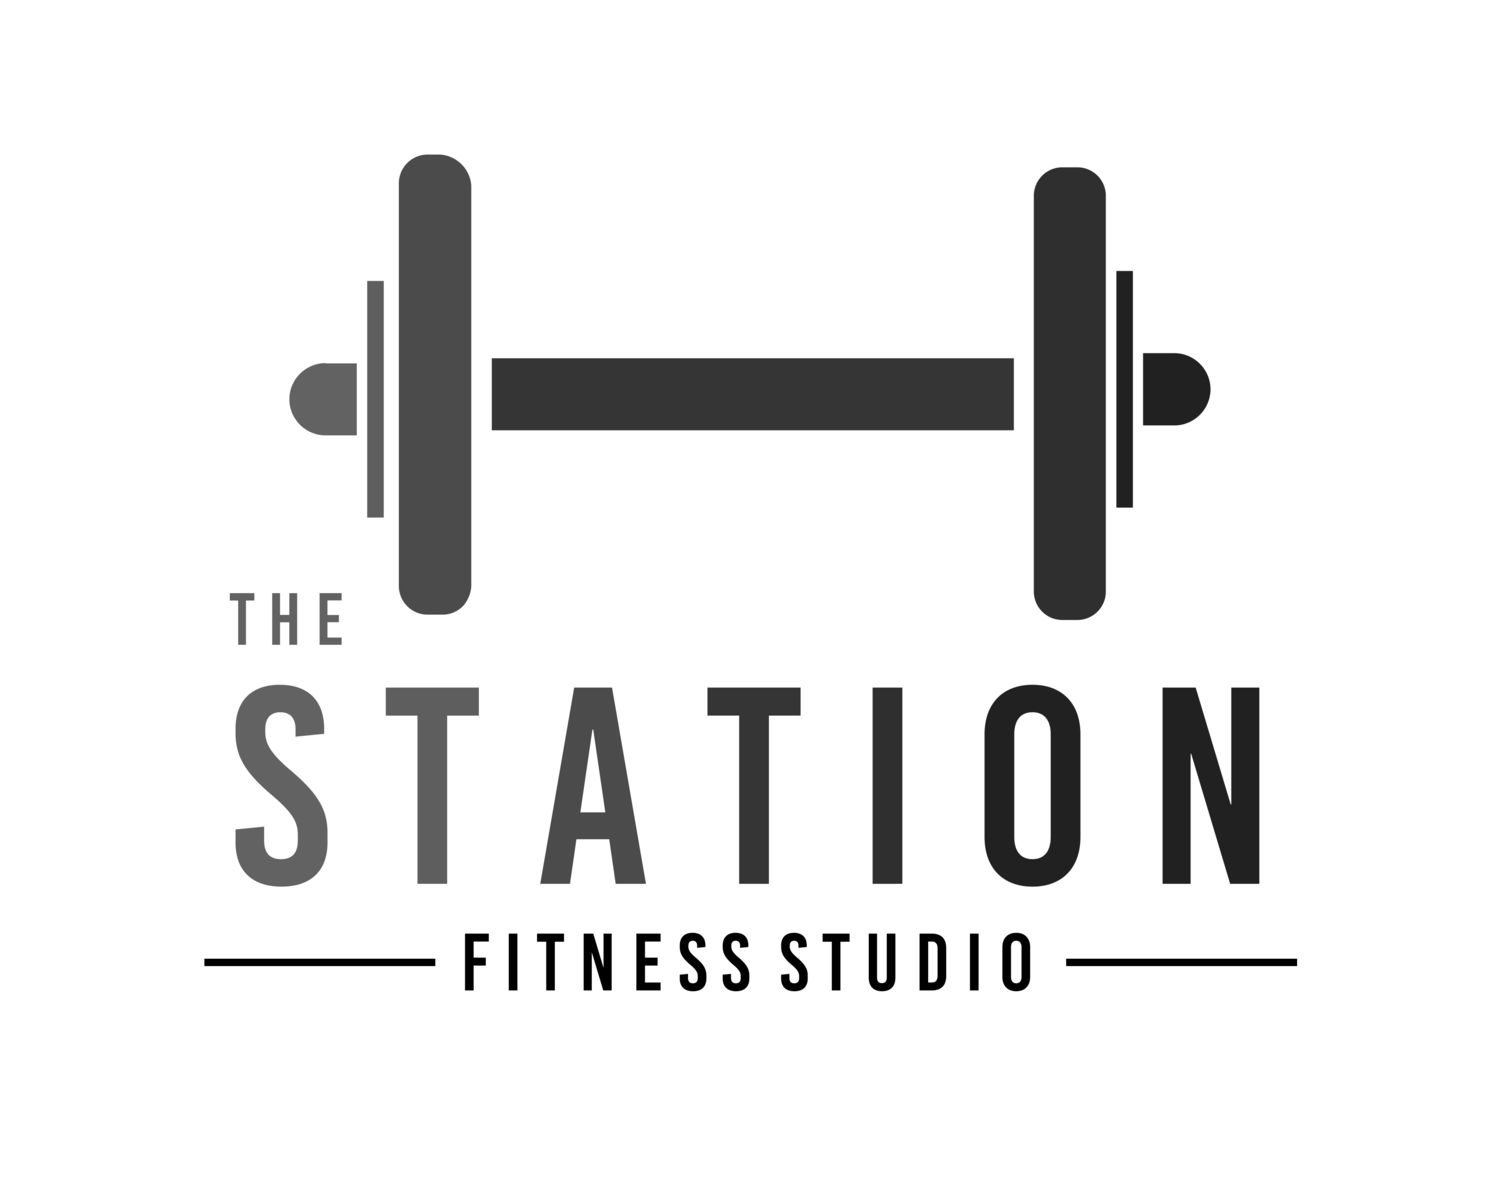 The Station Fitness Studio